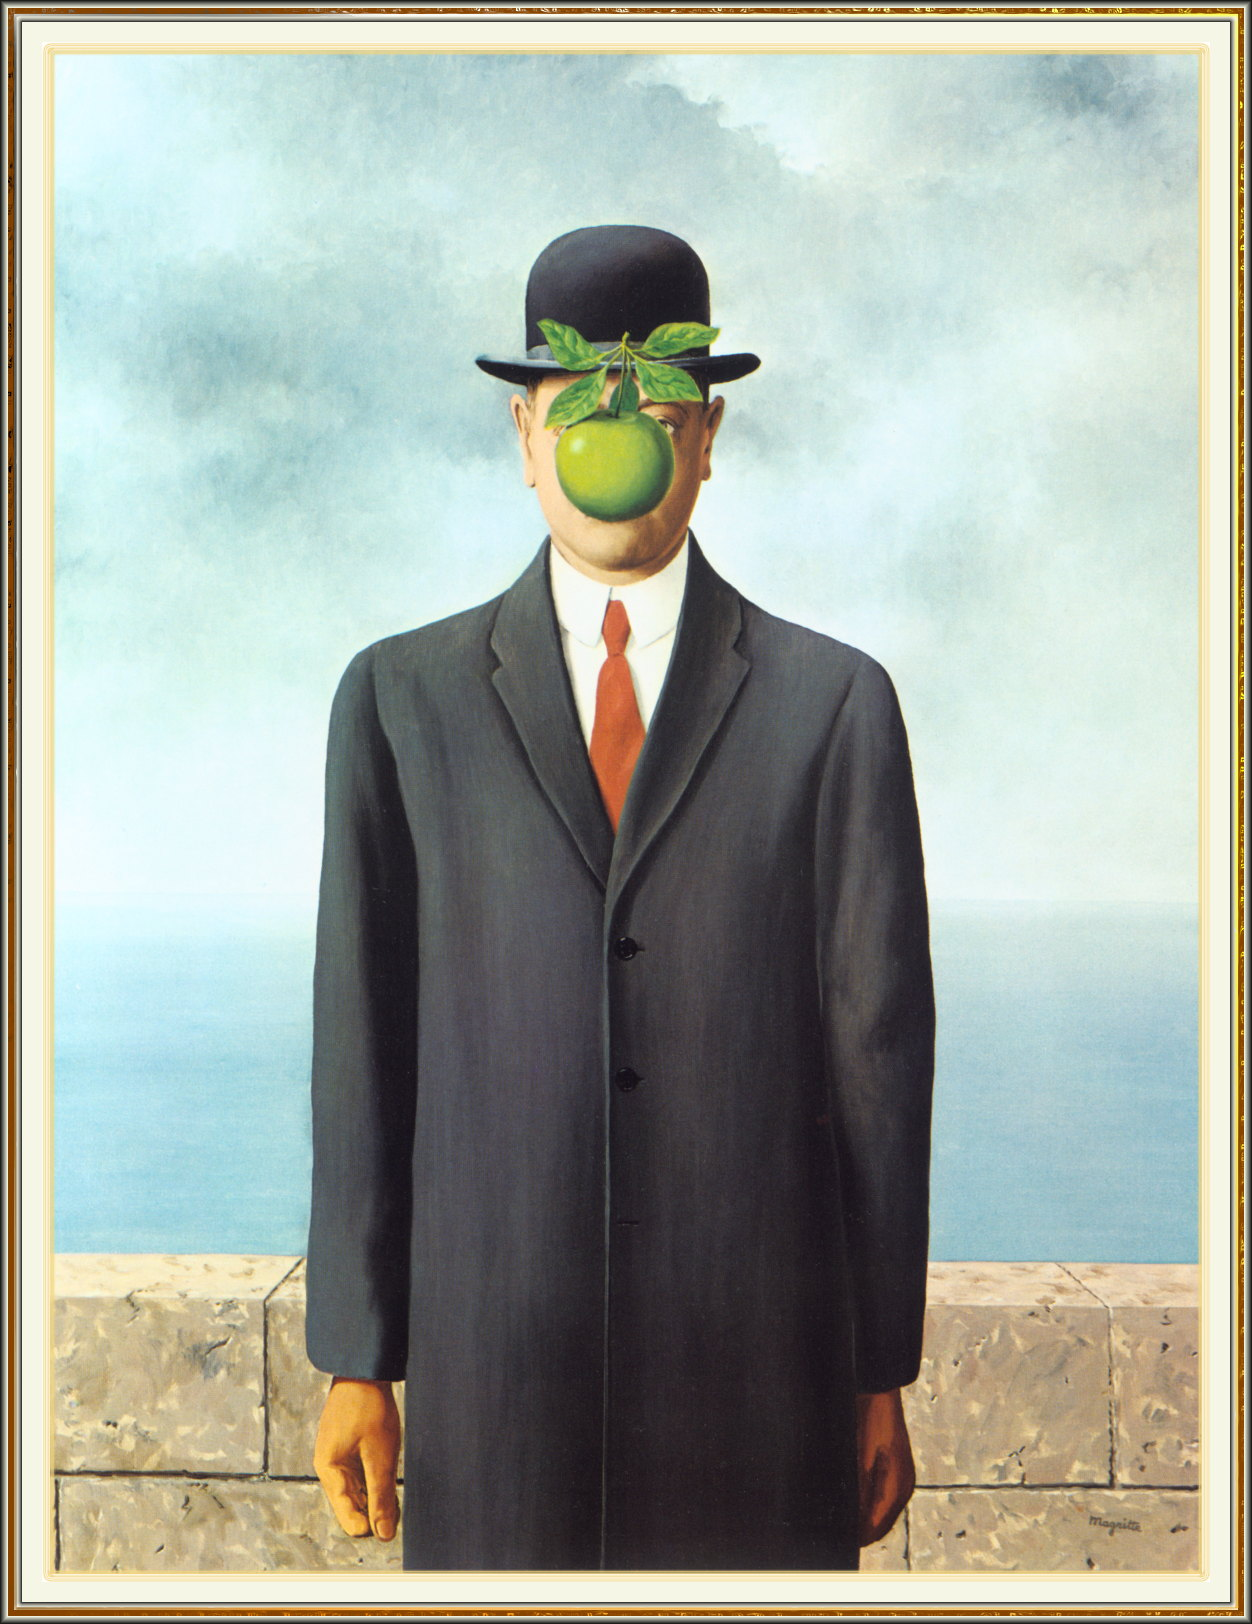 https://uploads2.wikiart.org/images/rene-magritte/son-of-man-1964(1).jpg